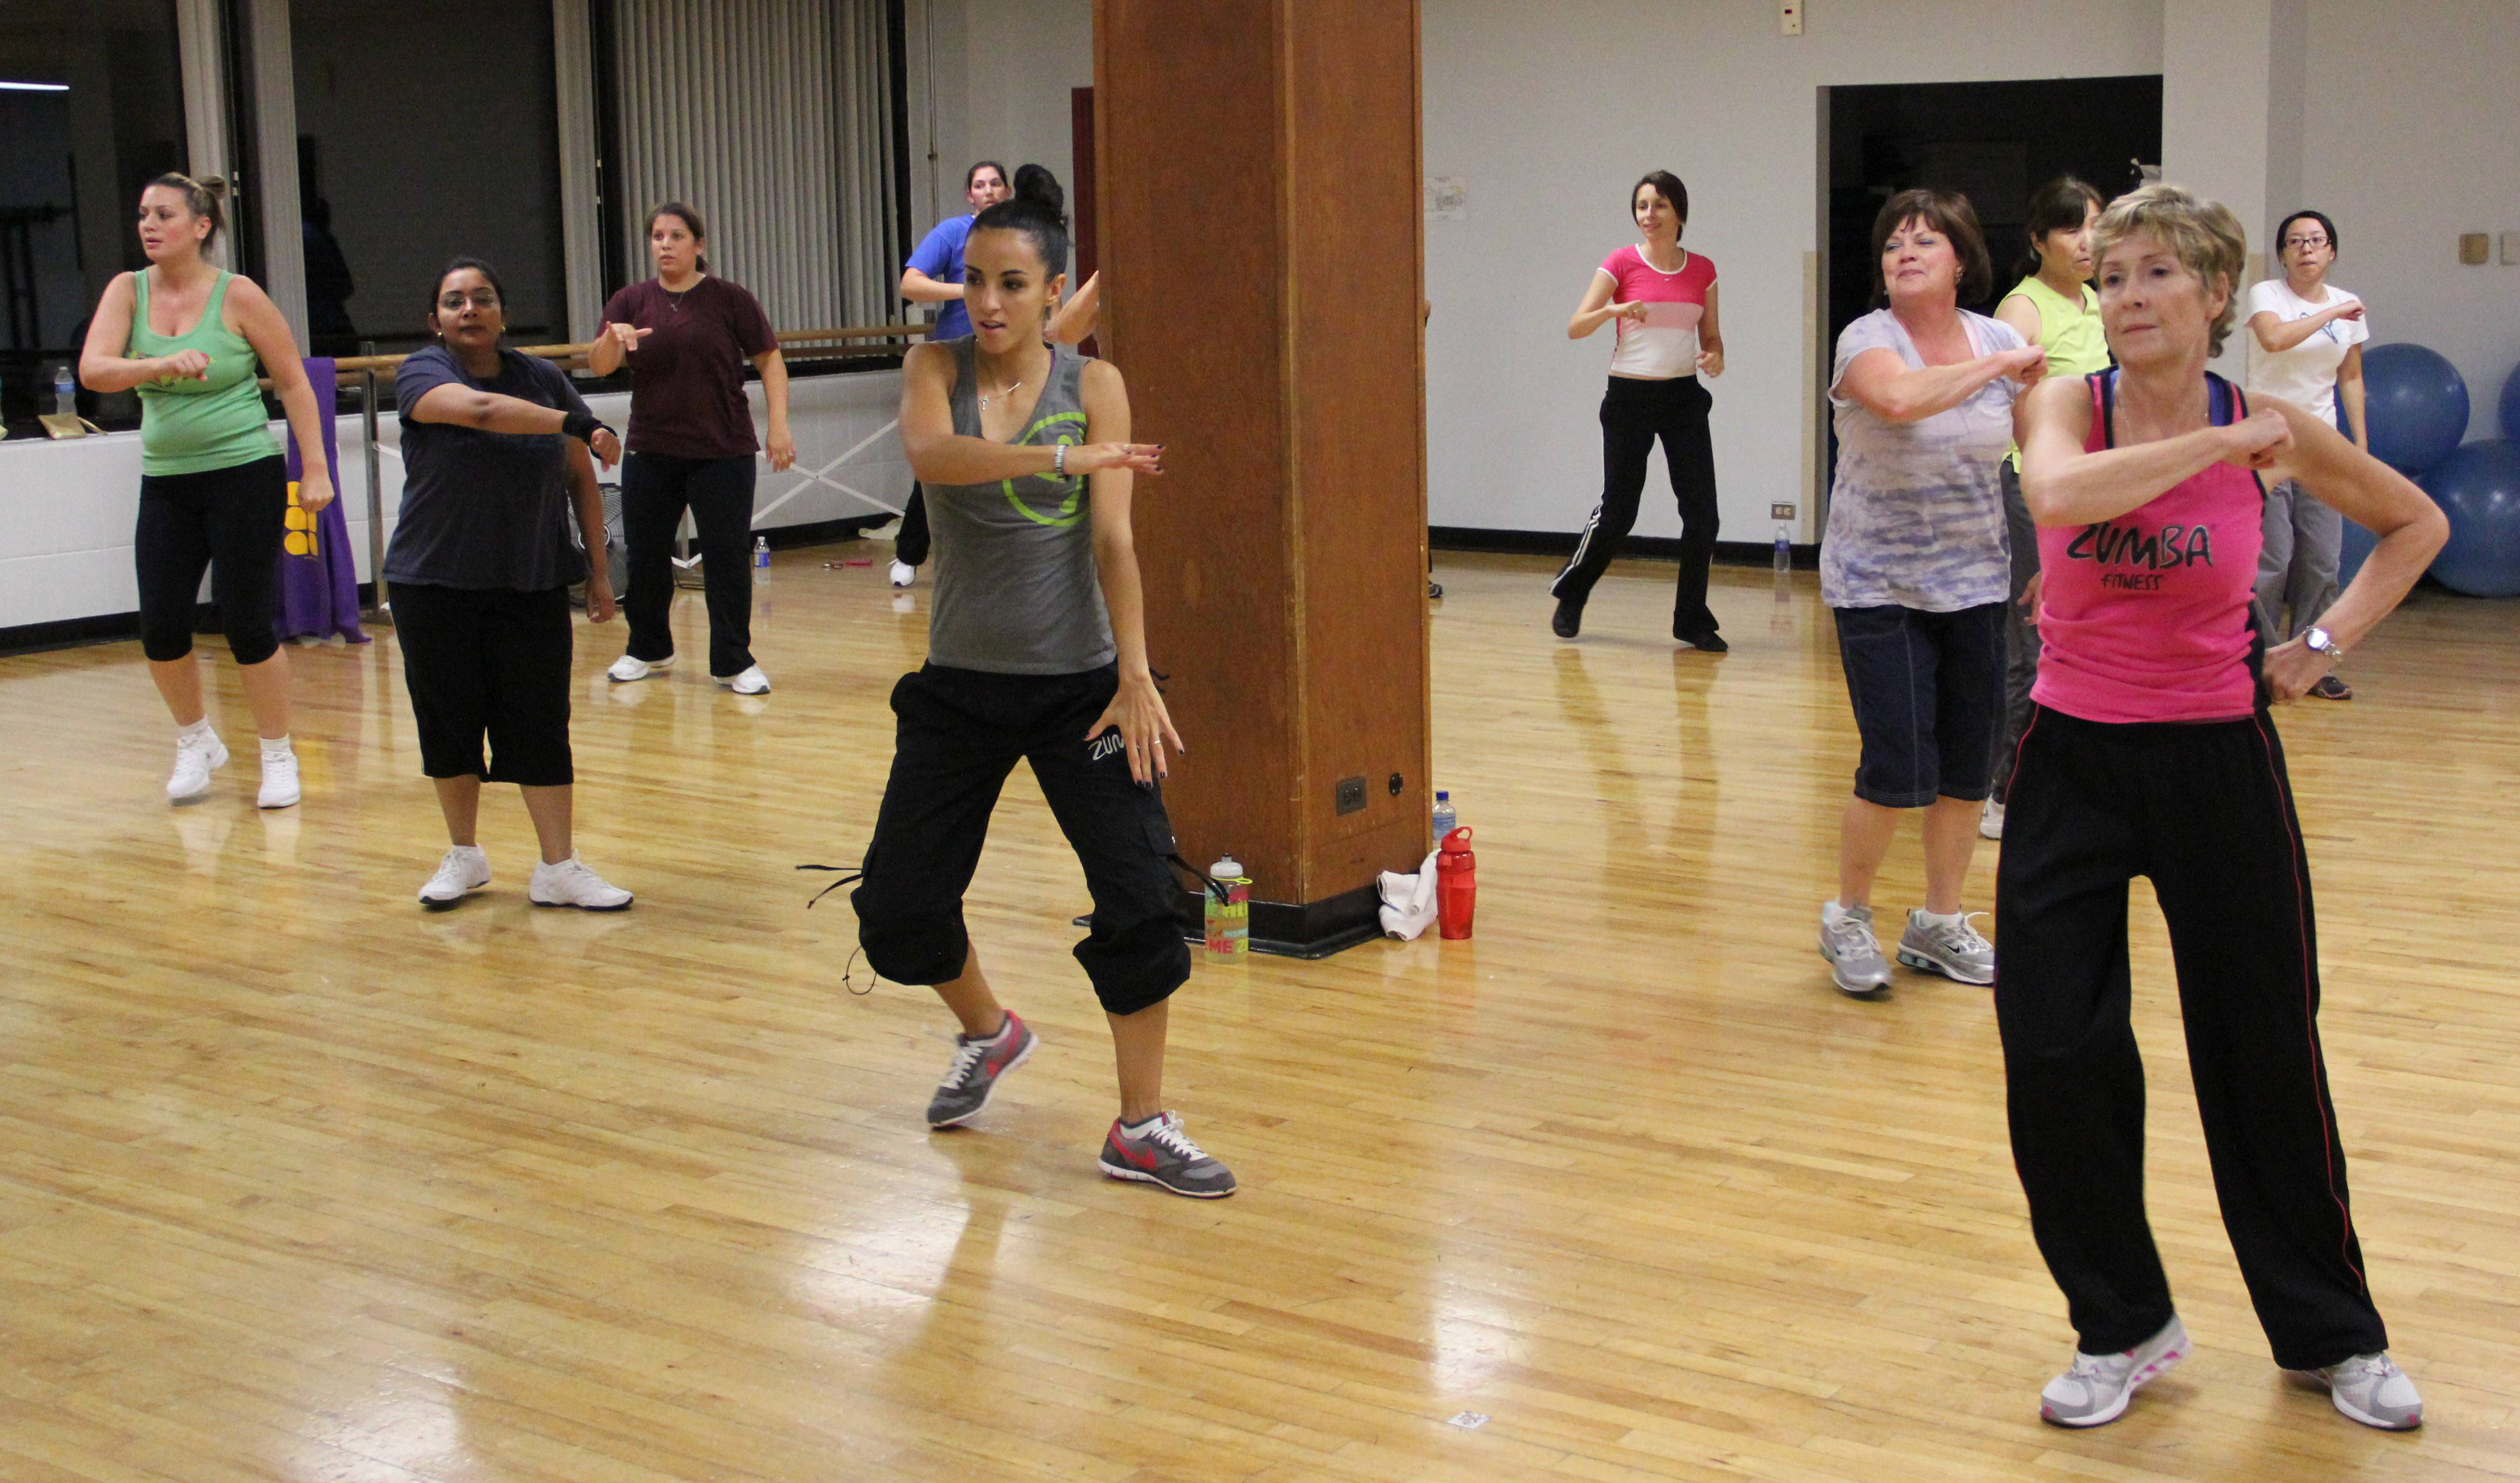 Participants dance in a ZUMBA class at the Community Recreation Center.